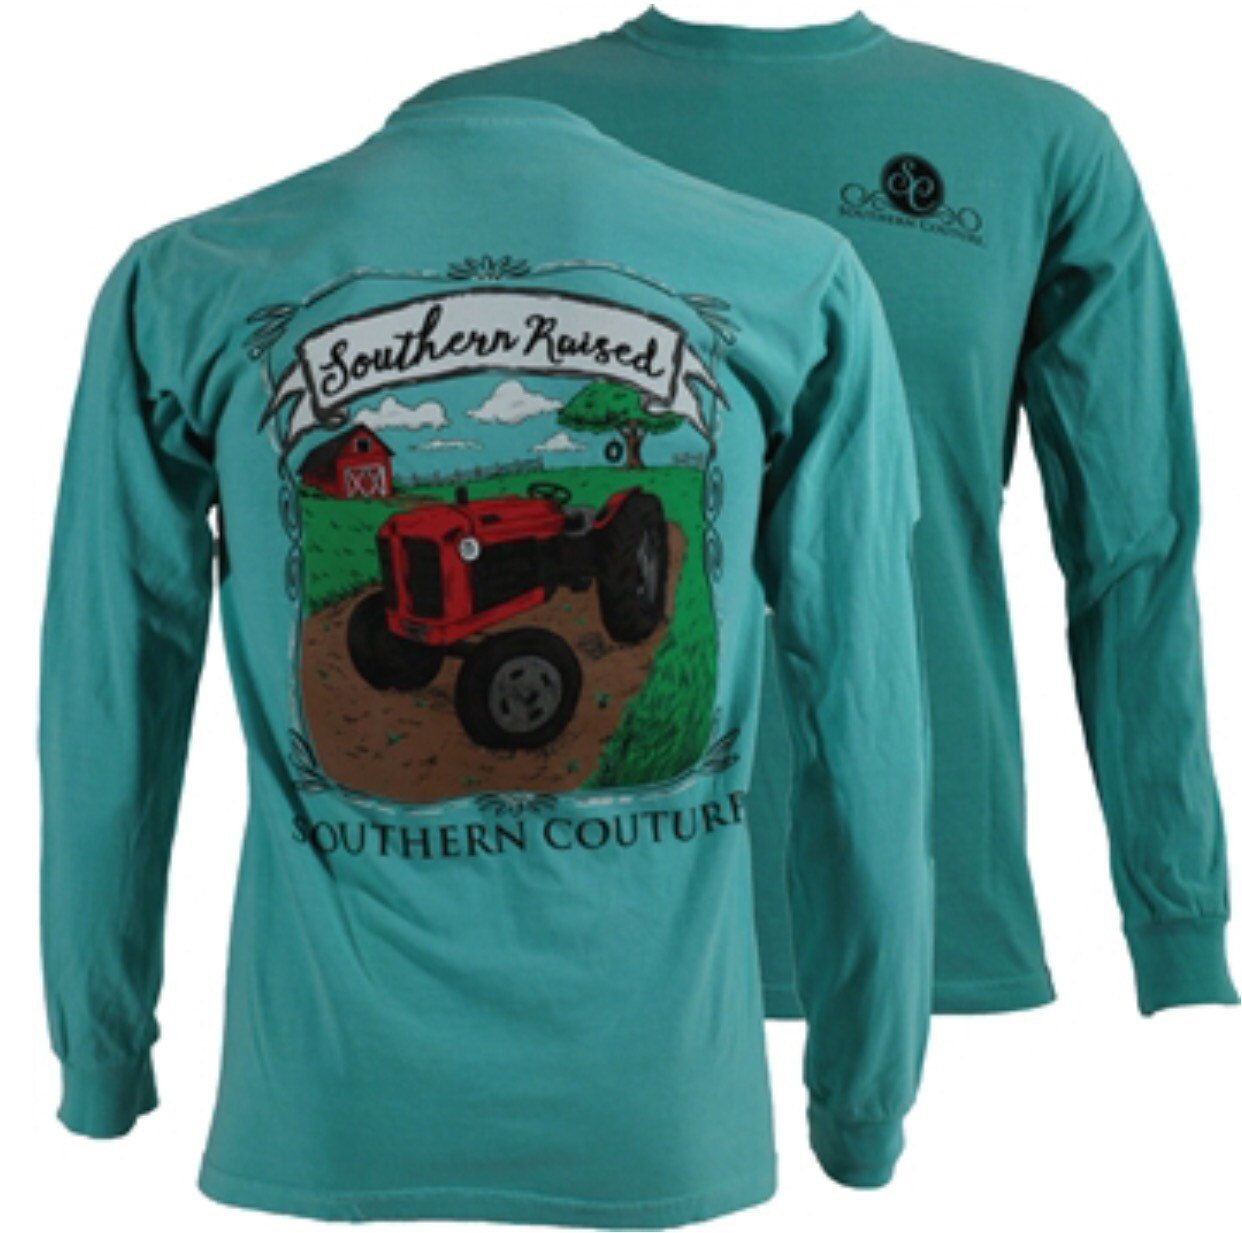 colors southern comfort tshirts mex shop floral t tropical tex back tropics s shirts chuy comforter hats